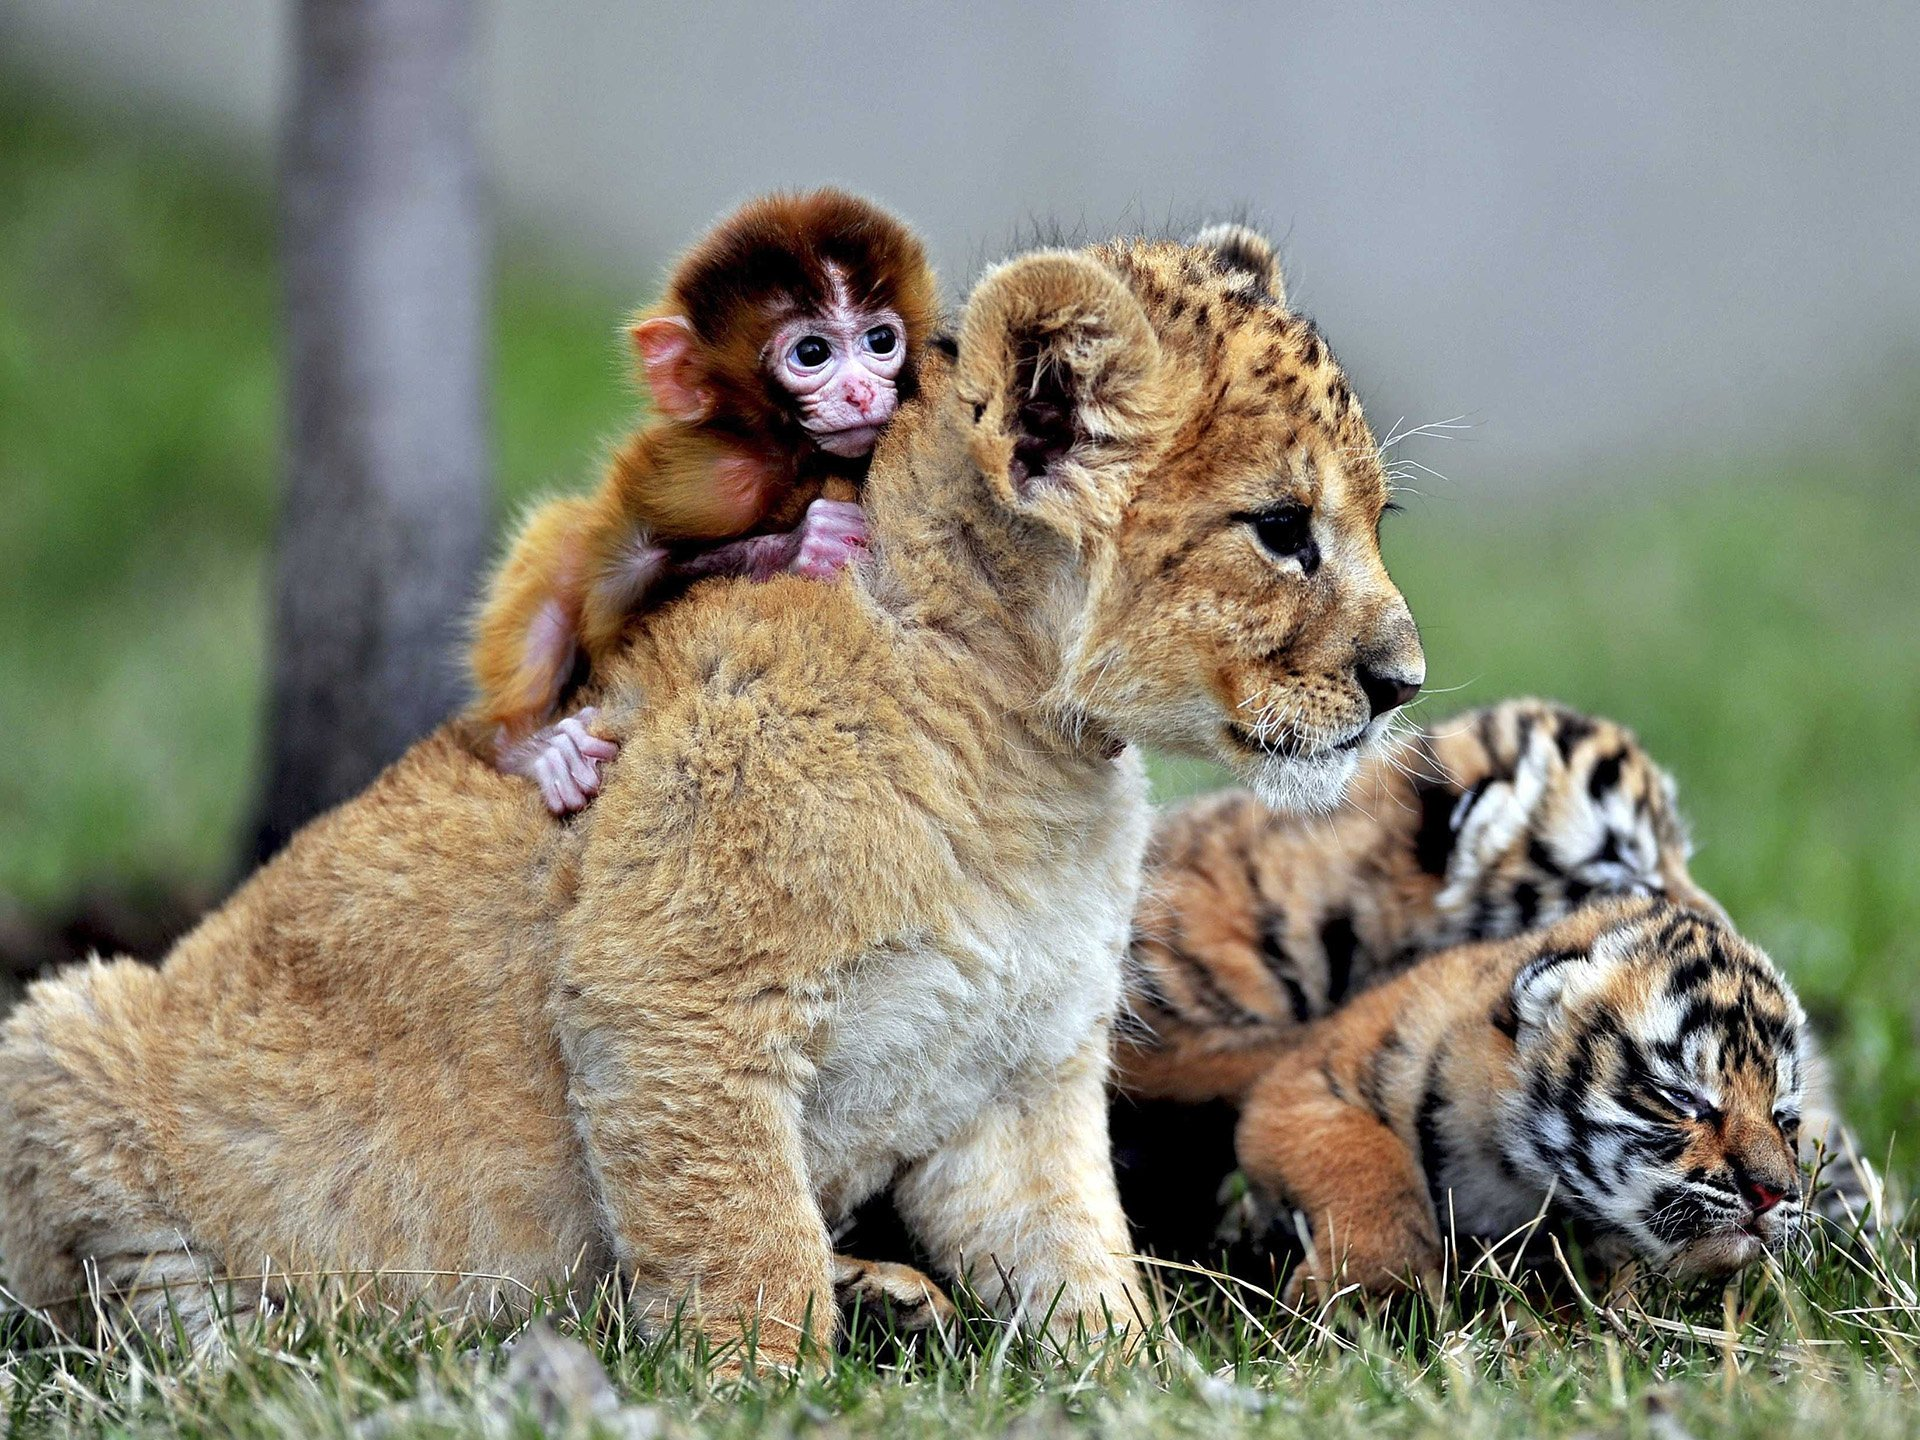 Lion Cub Tiger Cubs And Baby Monkey HD Wallpaper